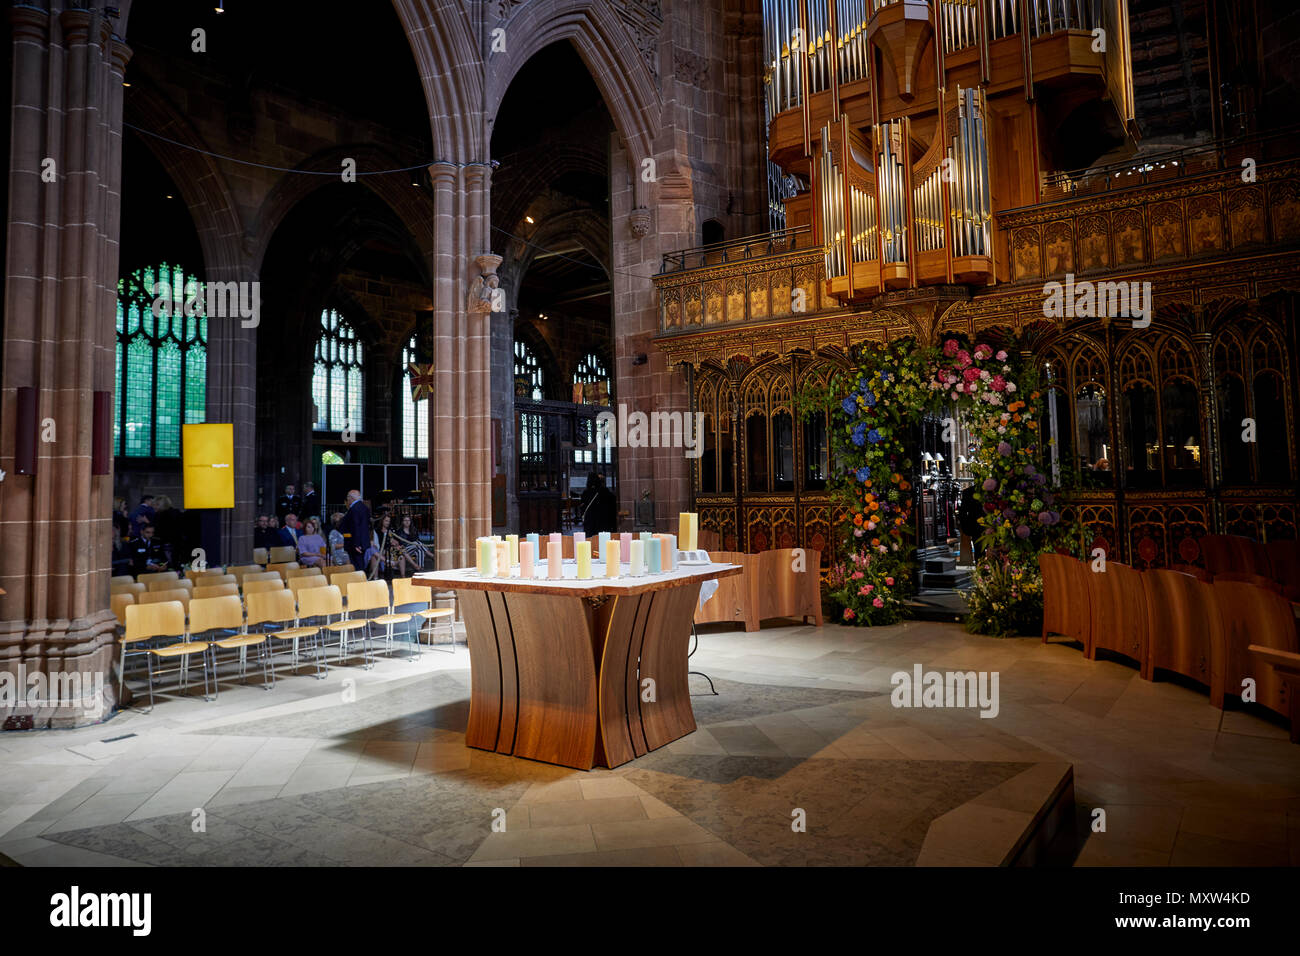 Manchester Arena terror attack 1 year anniversary 22 Candles inside the cathedral for each victim - Stock Image